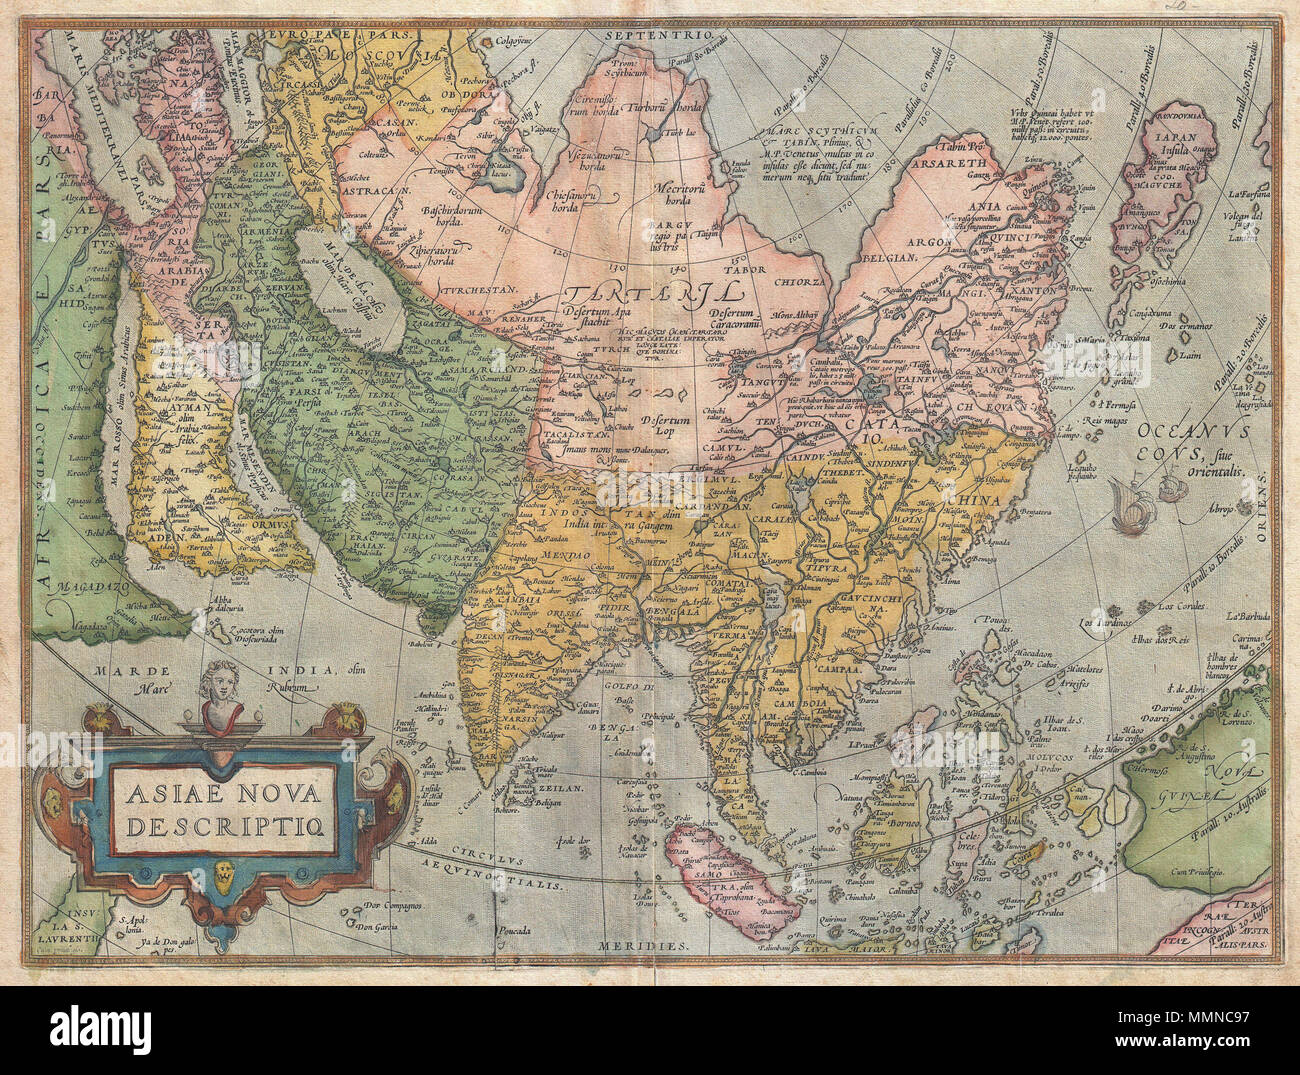 Map Of Asia North South East West.English A Scarce And Stunning First Edition Example Of Abraham